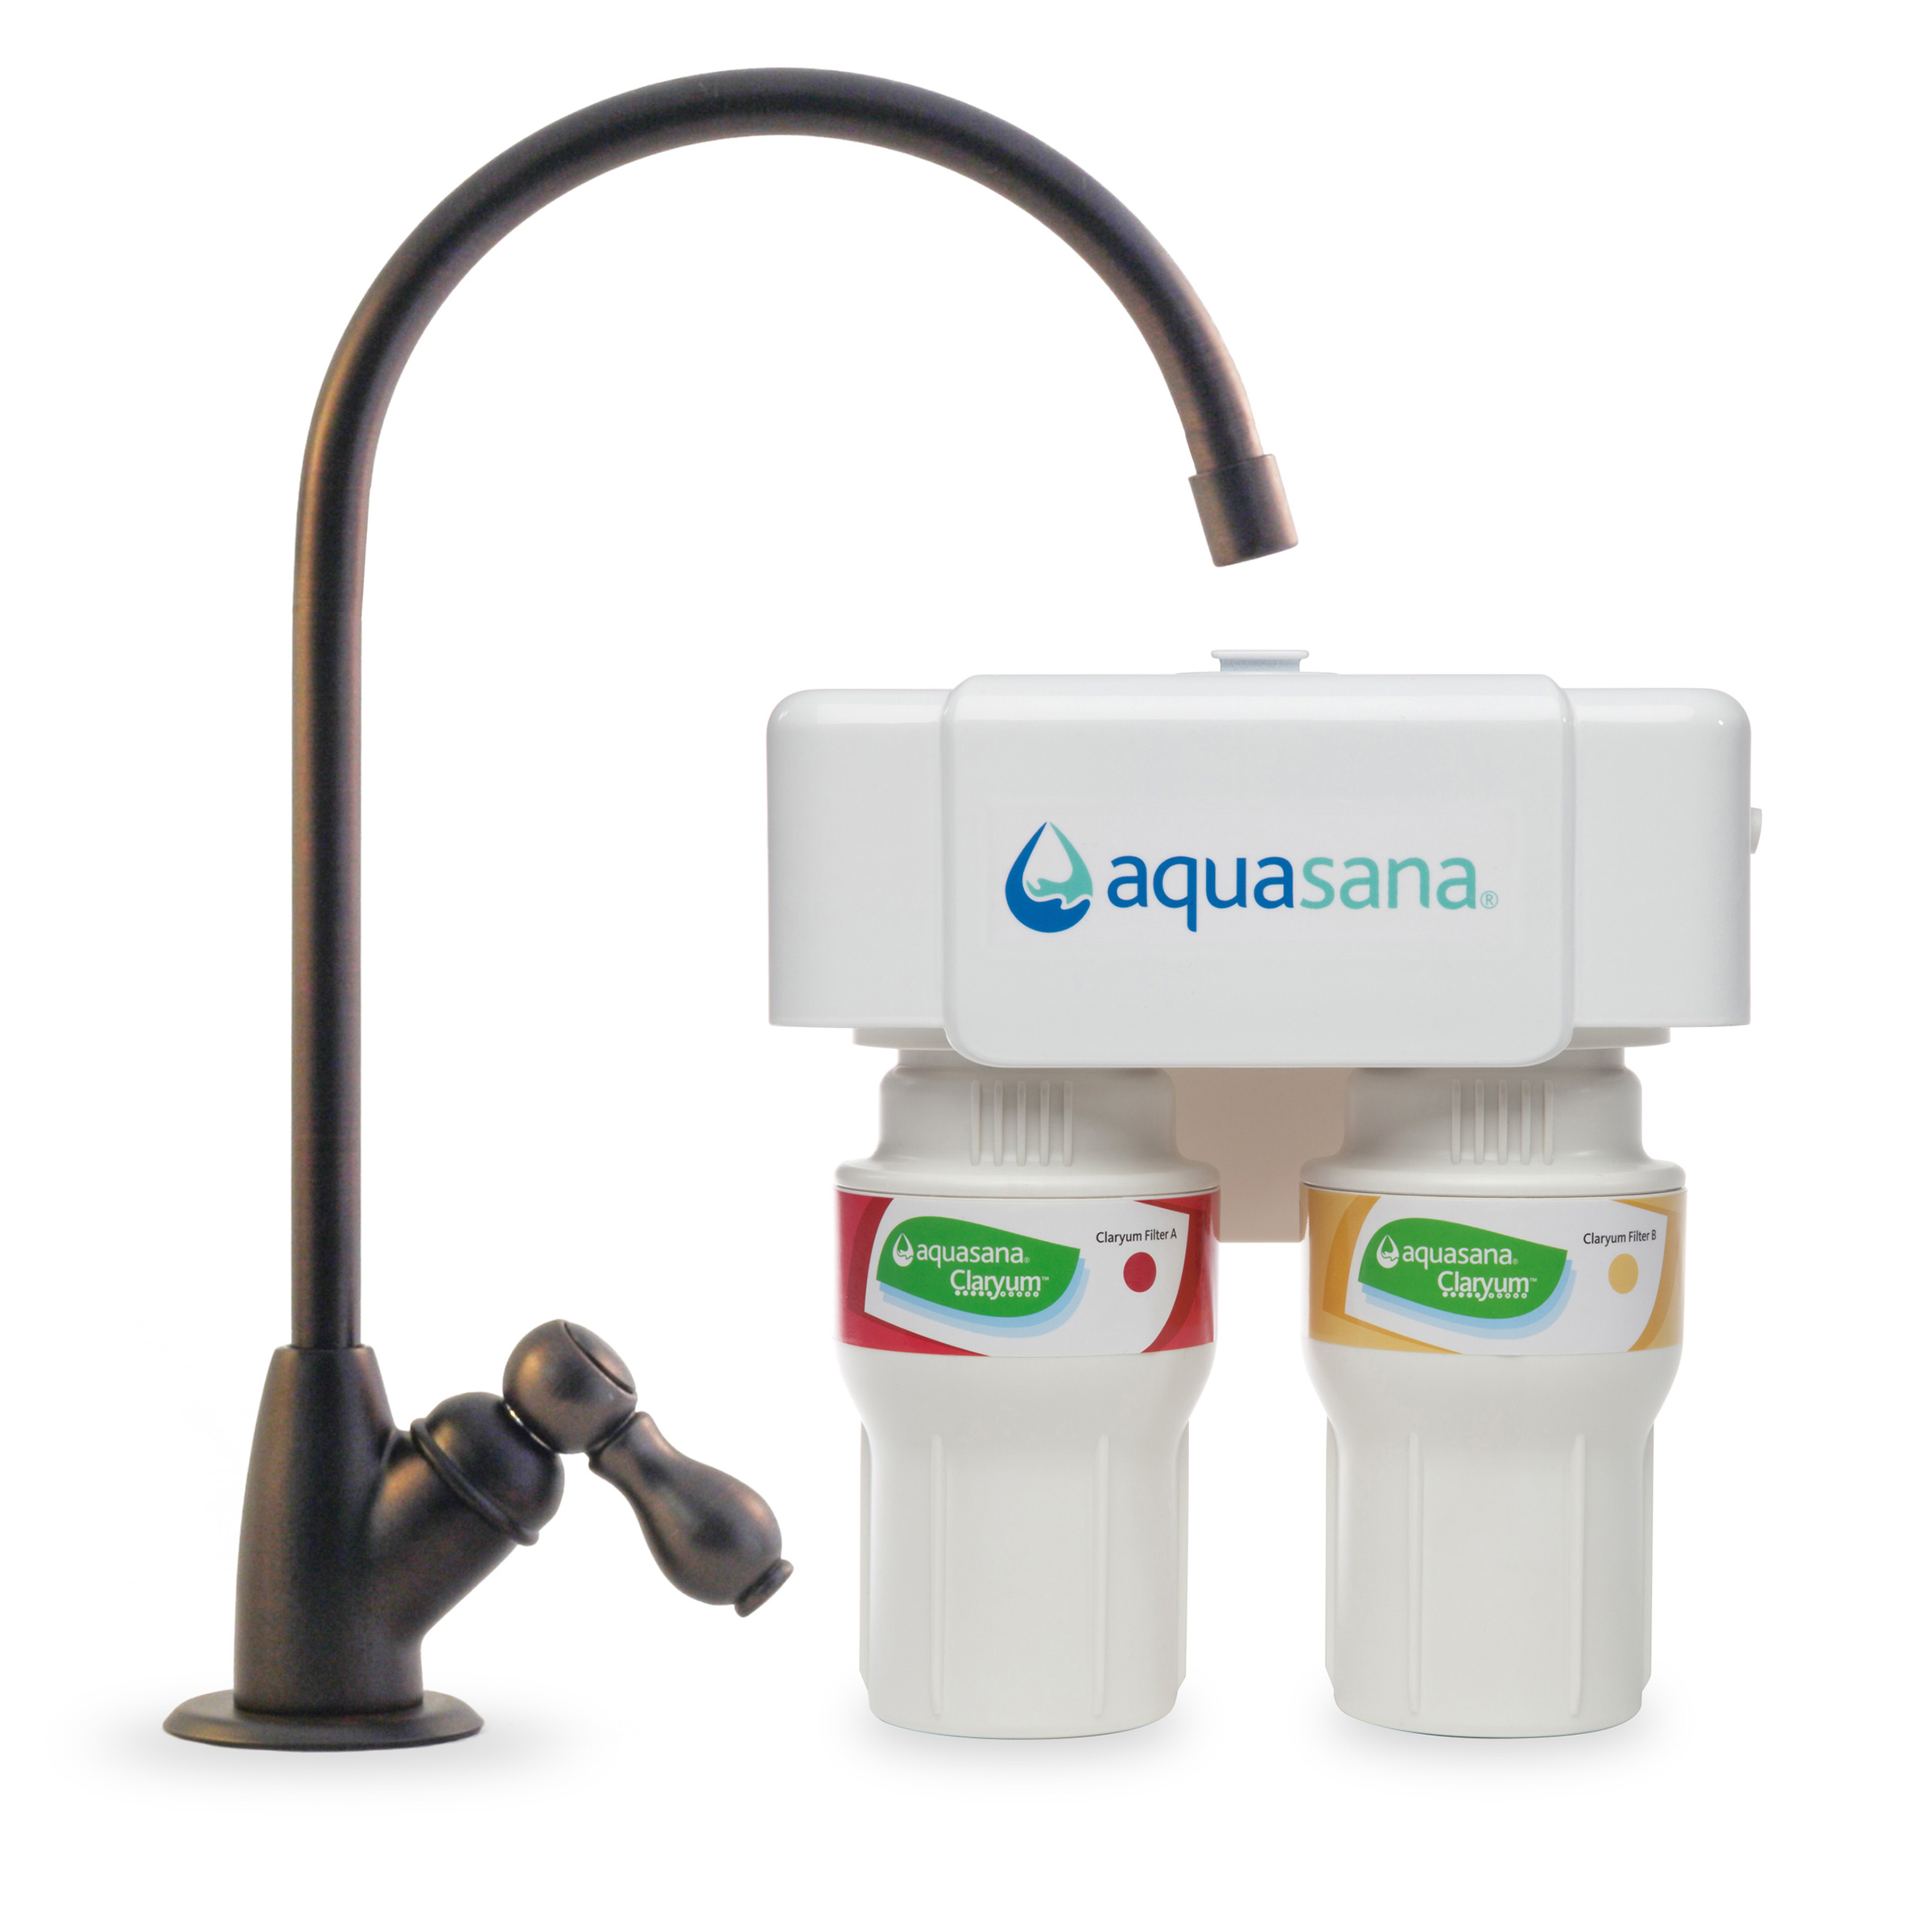 Aquasana AQ-5200.62 2-Stage Under Counter Water Filter System with Oil Rubbed Bronze Faucet